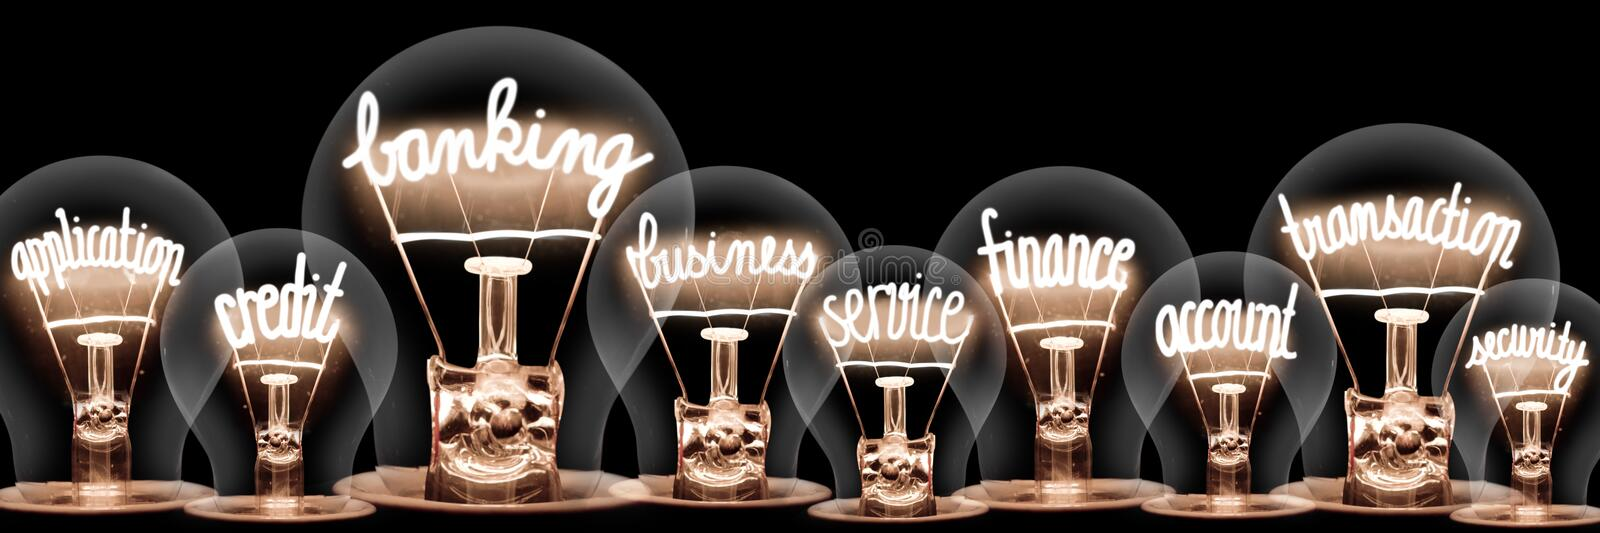 Light Bulbs with Banking Concept stock photo